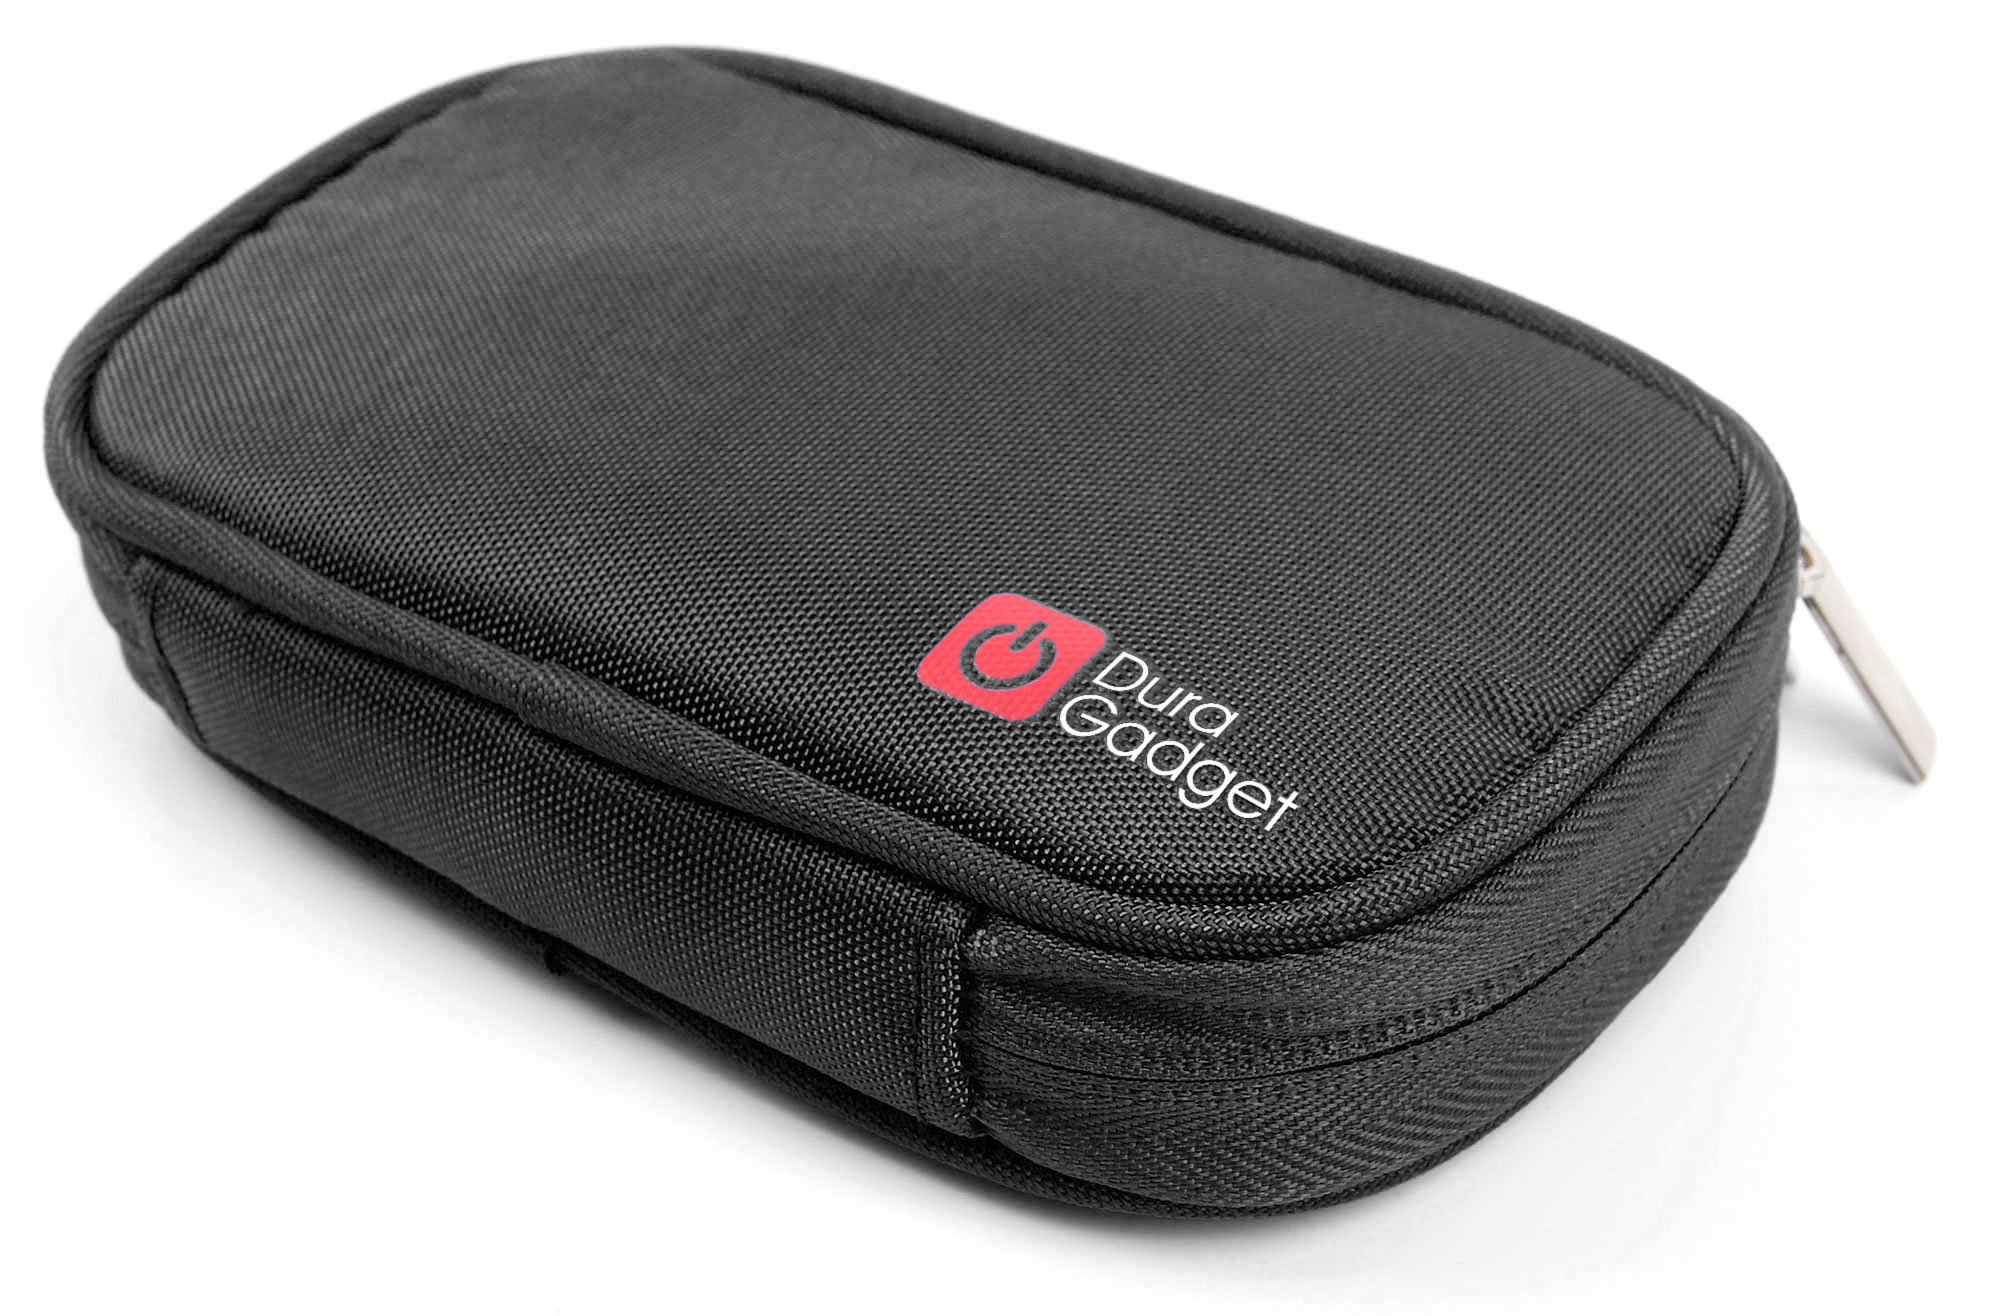 DURAGADGET Black Memory Foam Case with Dual Zips - Compatible with The Garmin Drive 51LMT-S 5""